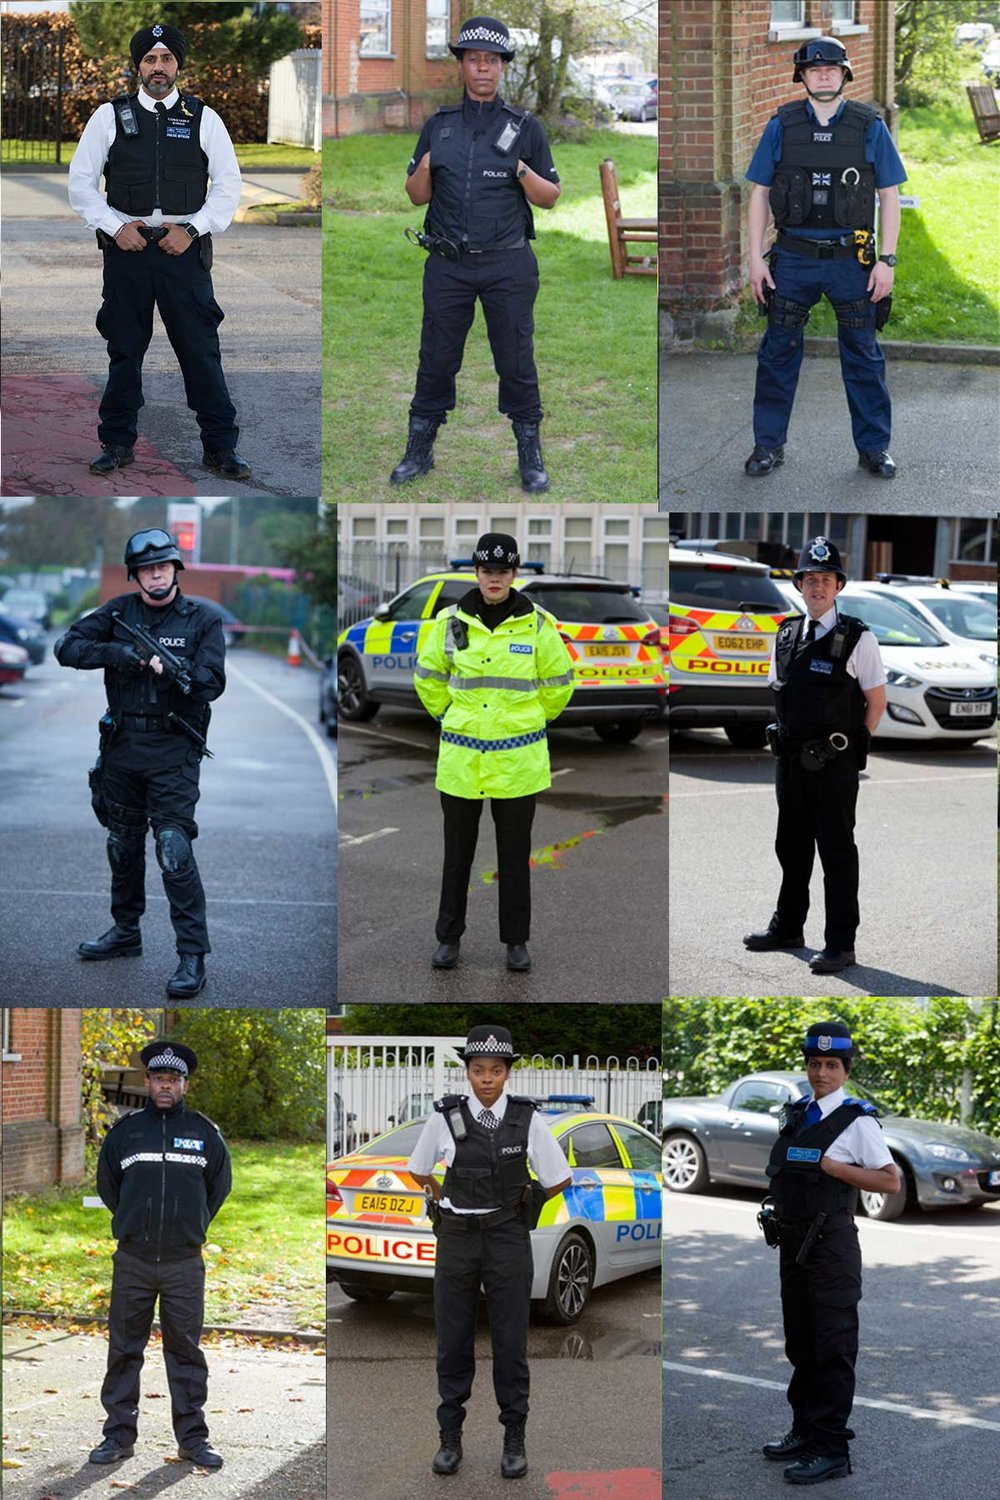 Police-Recruitment-Full-Length-Only-Web-Size.jpg